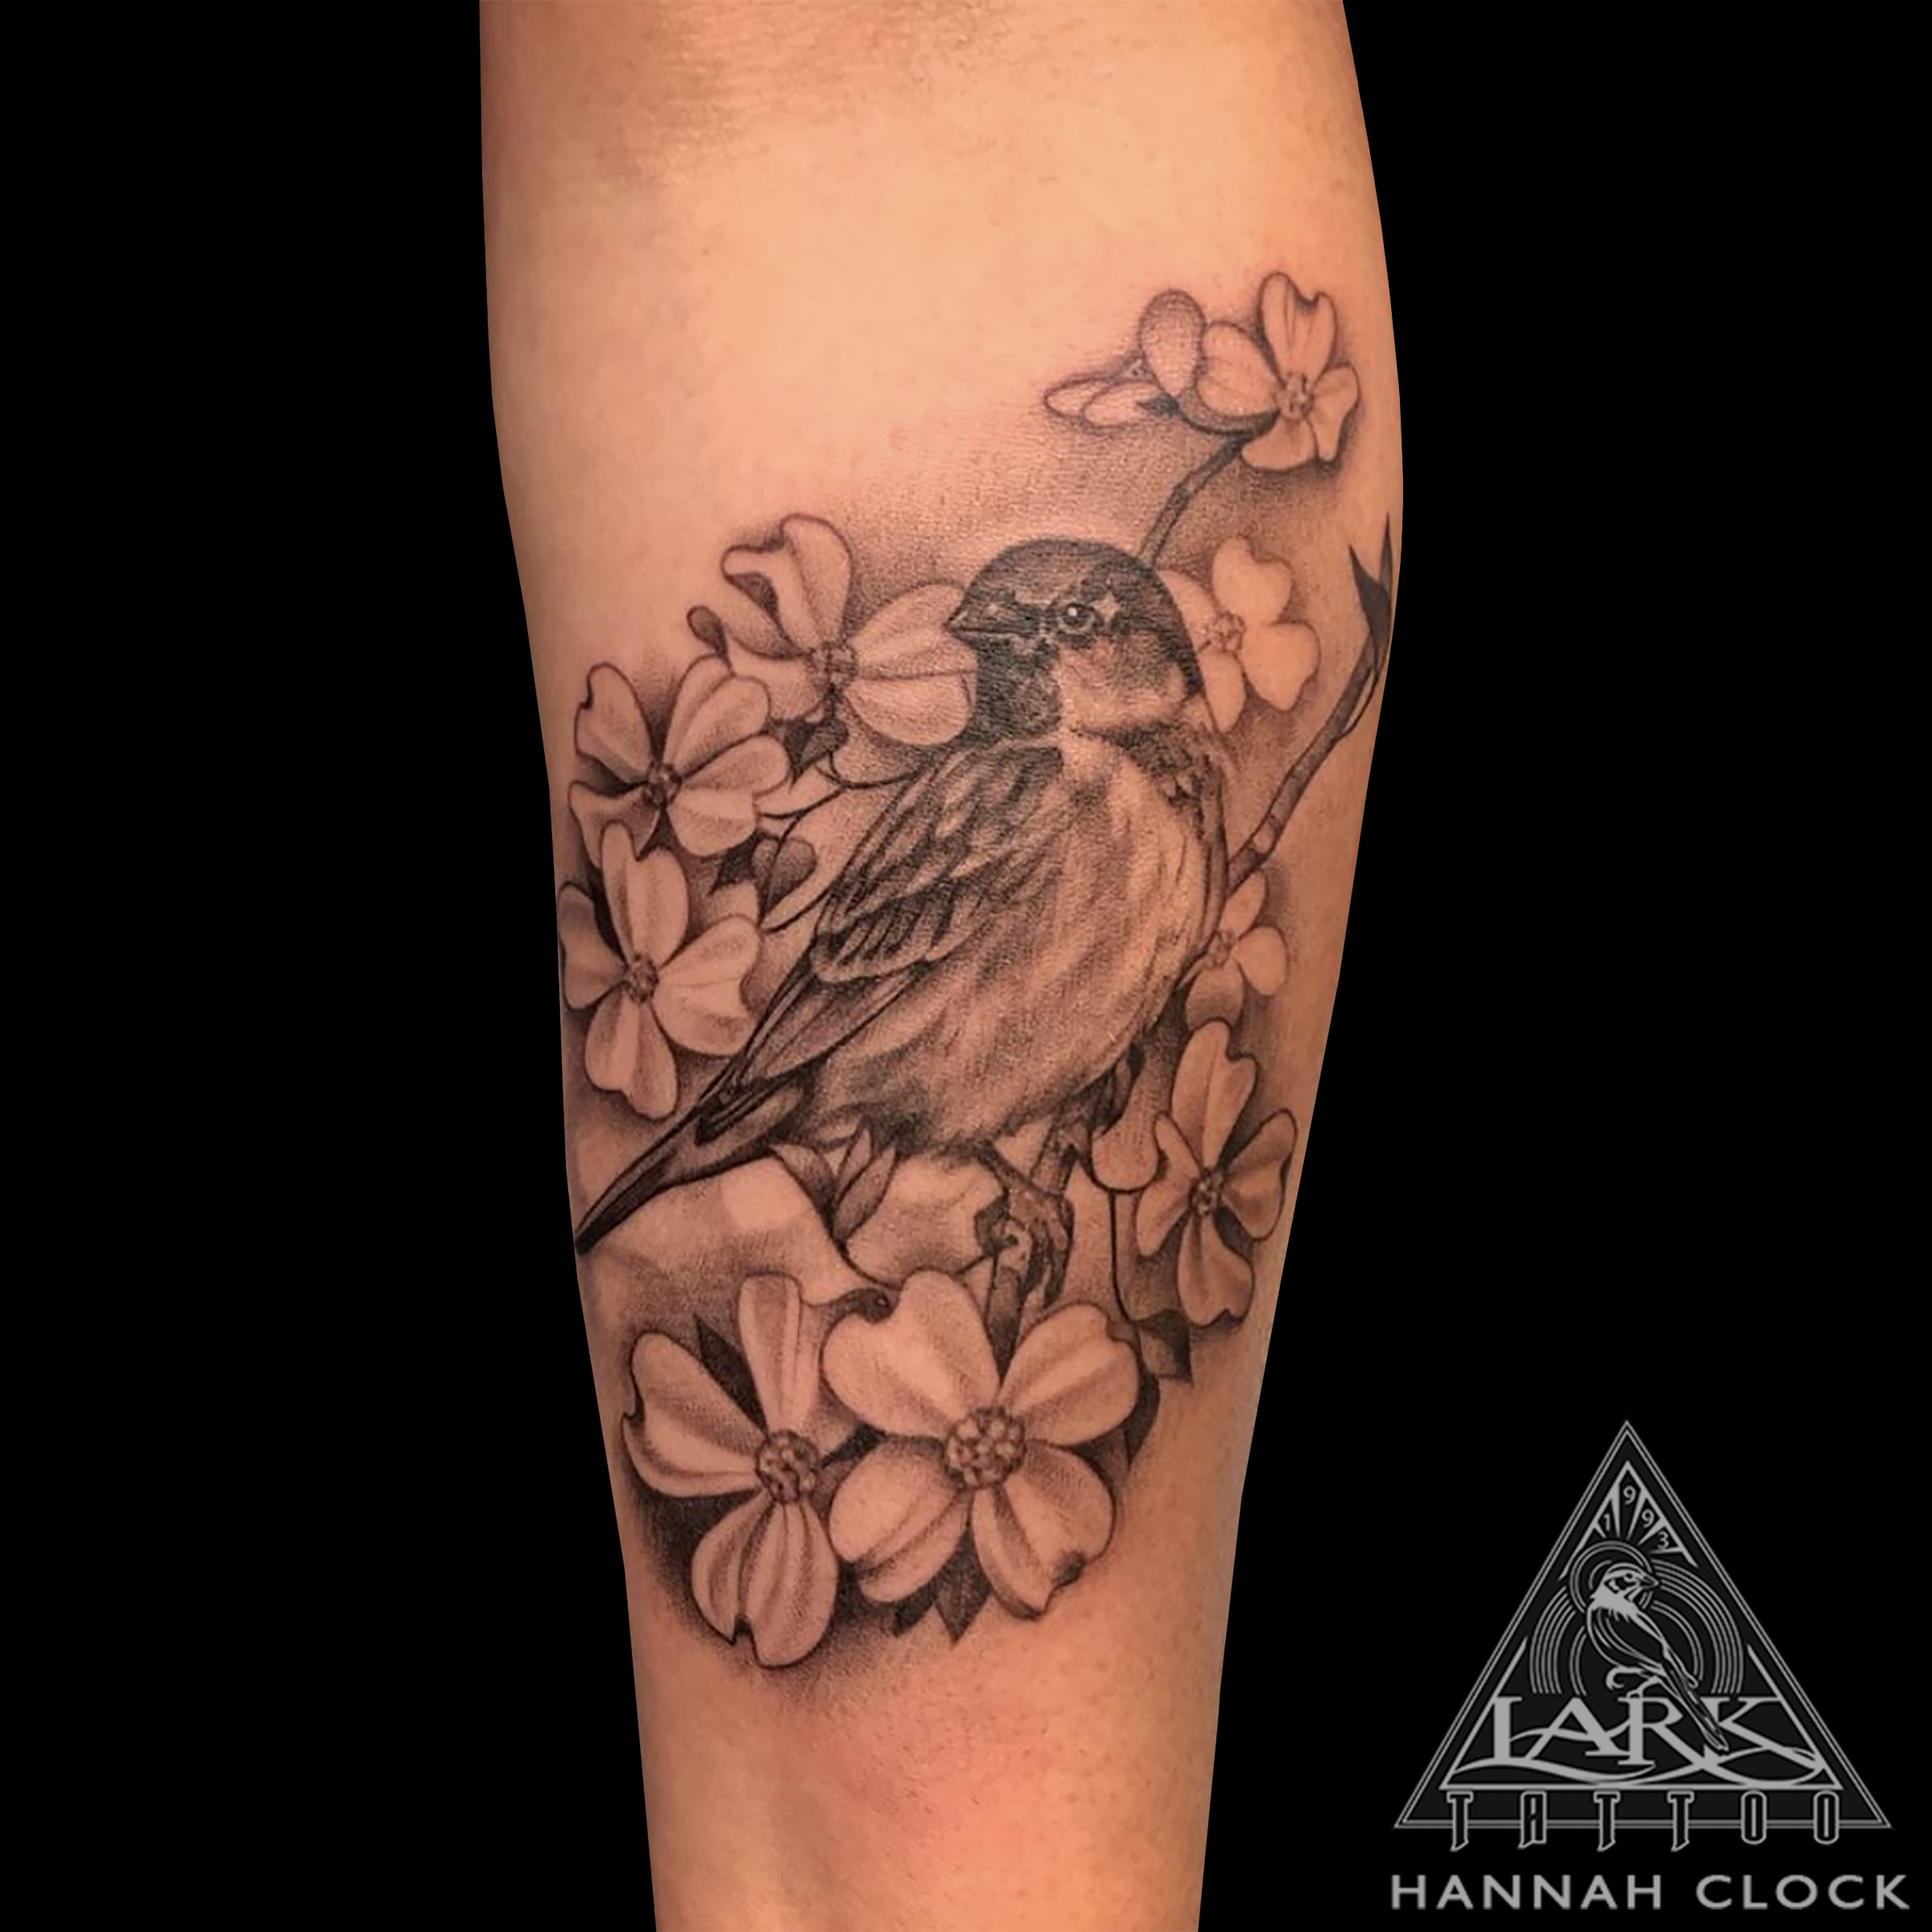 Birdie, BirdieTattoo, Sparrow, SparrowTattoo, FemaleTattooer, FemaleArtist, FemaleTattooArtist, LadyTattooer, Dogwood, DogwoodTattoo, BNG, BNGTattoo, BlackAndGrey, BlackAndGreyTattoo, BlackAndGray, BlackAndGrayTattoo, Flower, FlowerTattoo, Forearm, ForearmTattoo, Floral, FloralTattoo, Bird, BirdTattoo, Nature, NatureTattoo, Animal, AnimalTattoo, FeminineTattoo, LarkTattoo, Tattoo, Tattoos , TattooArtist, Tattoist, Tattooer, LongIslandTattooArtist, LongIslandTattooer, LongIslandTattoo, TattooOfTheDay, Tat, Tats, Tatts, Tatted, Inked, Ink, TattooInk, AmazingInk, AmazingTattoo, BodyArt, LarkTattooWestbury, Westbury, LongIsland, NY, NewYork, USA, Art, Tattedup, InkedUp, LarkTattoos